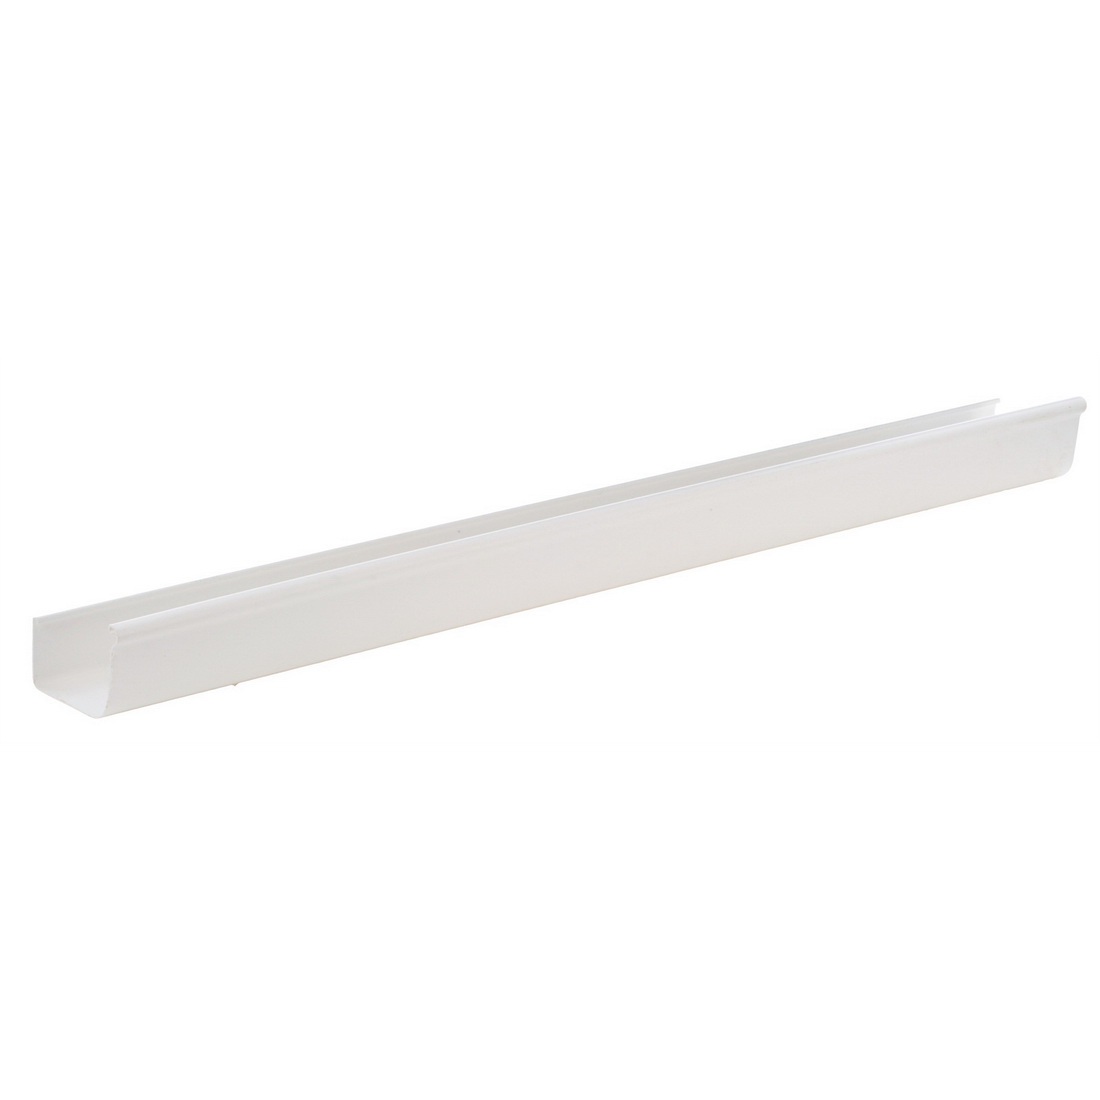 Stormcold Spouting 5m x 123mm Unplasticised PVC White